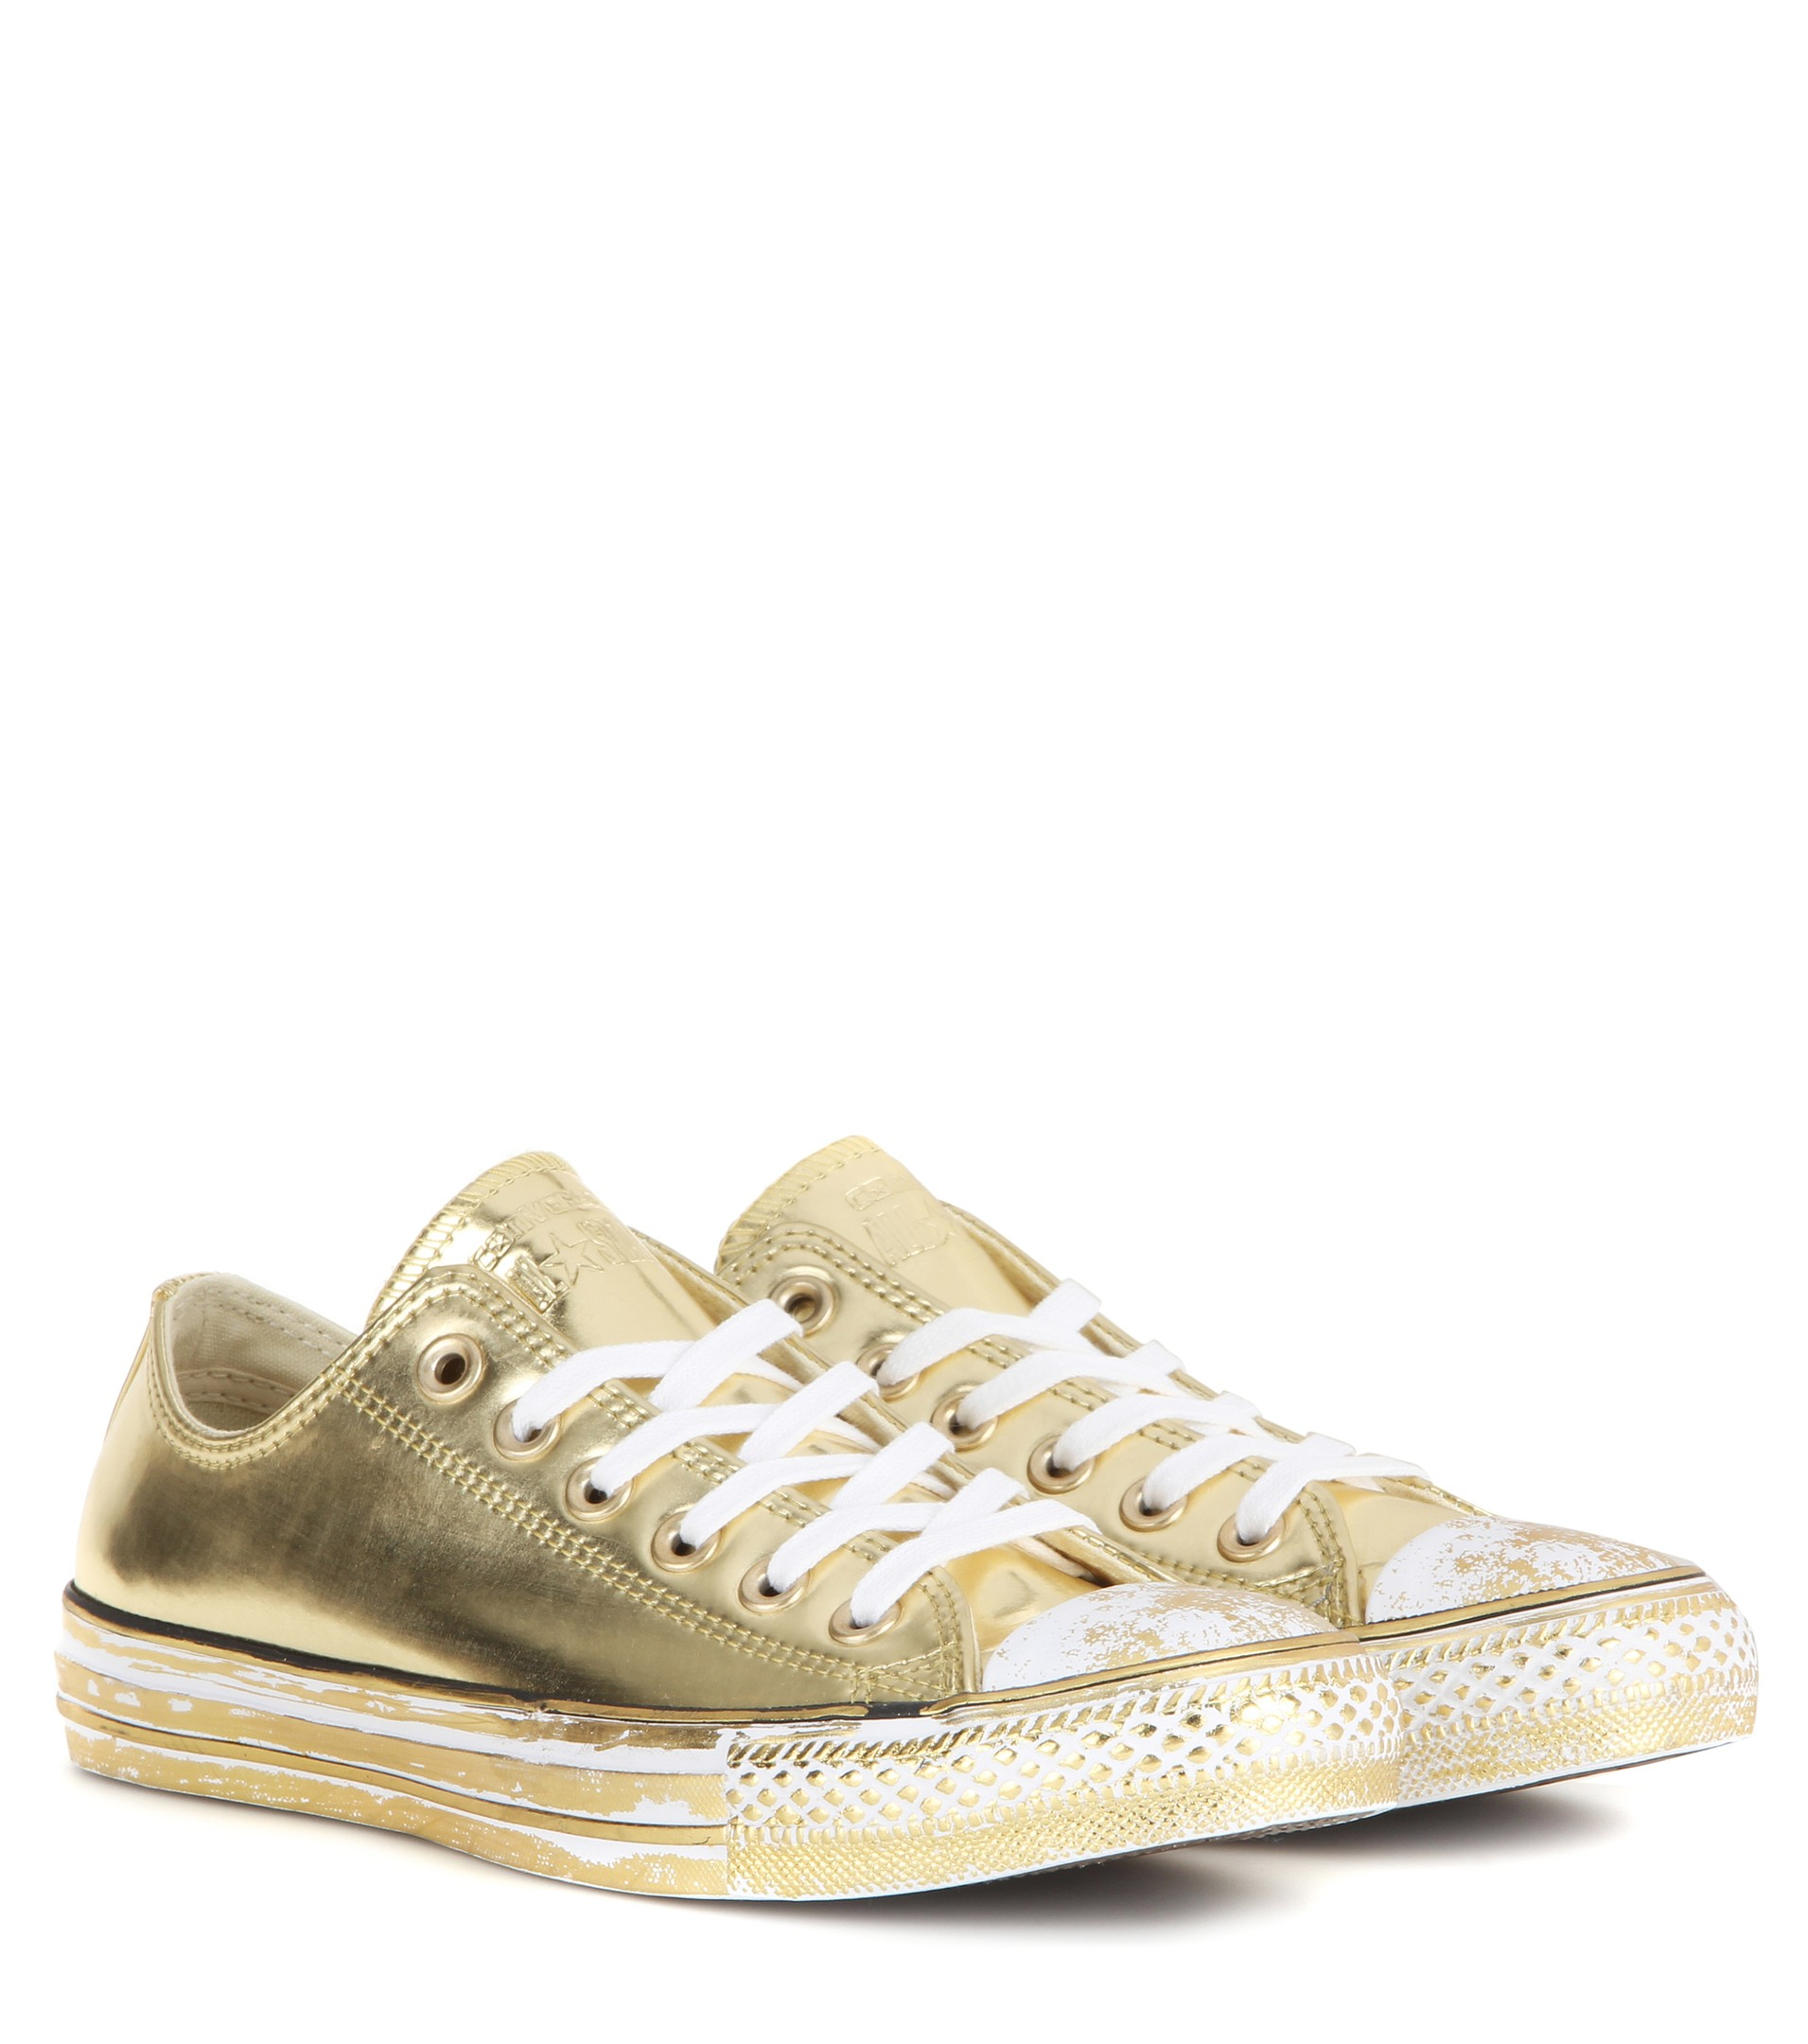 lyst converse chuck taylor all star metallic sneakers in metallic. Black Bedroom Furniture Sets. Home Design Ideas